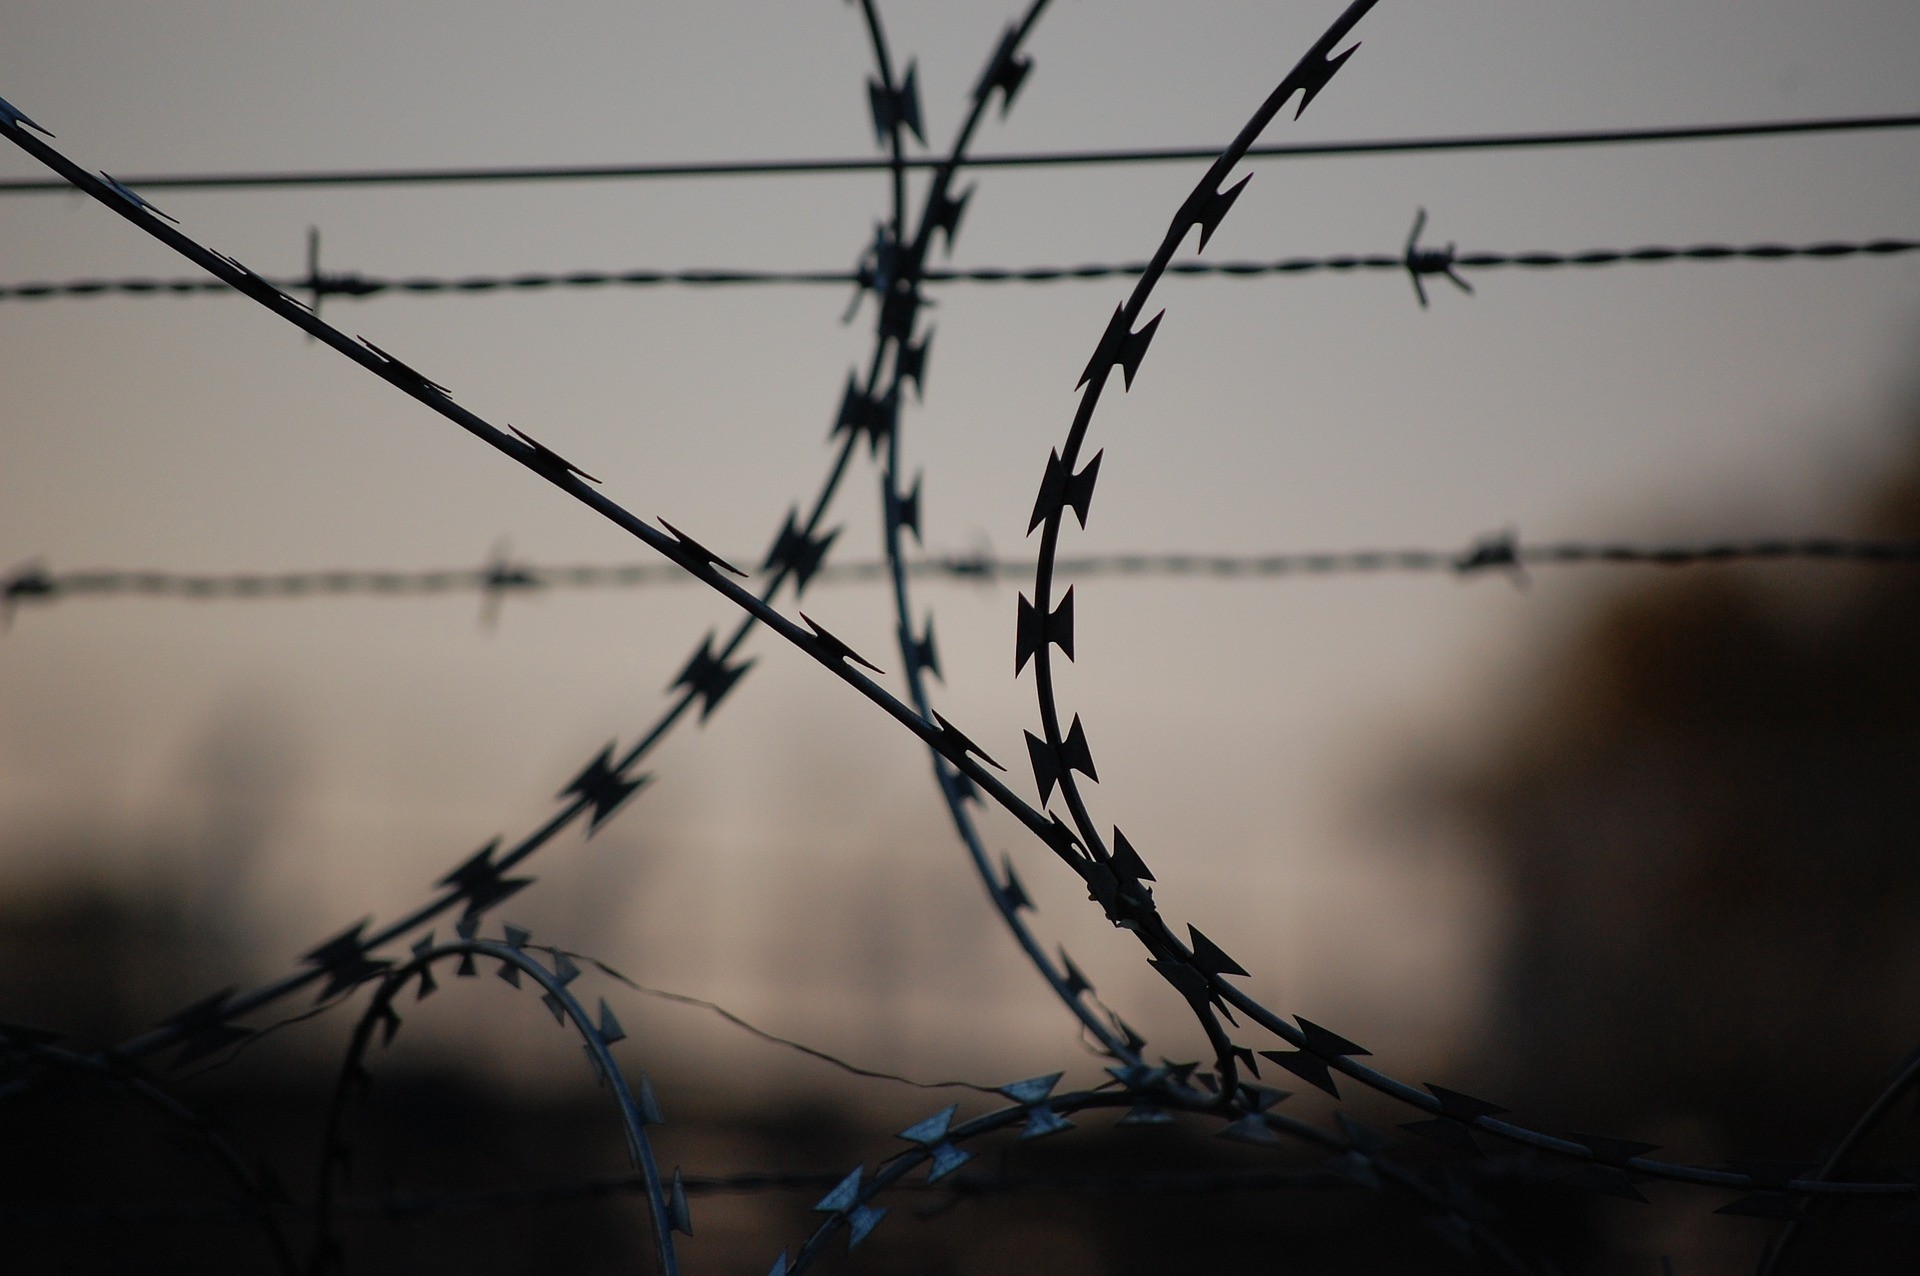 Close-up of prison razor-wire fencing.